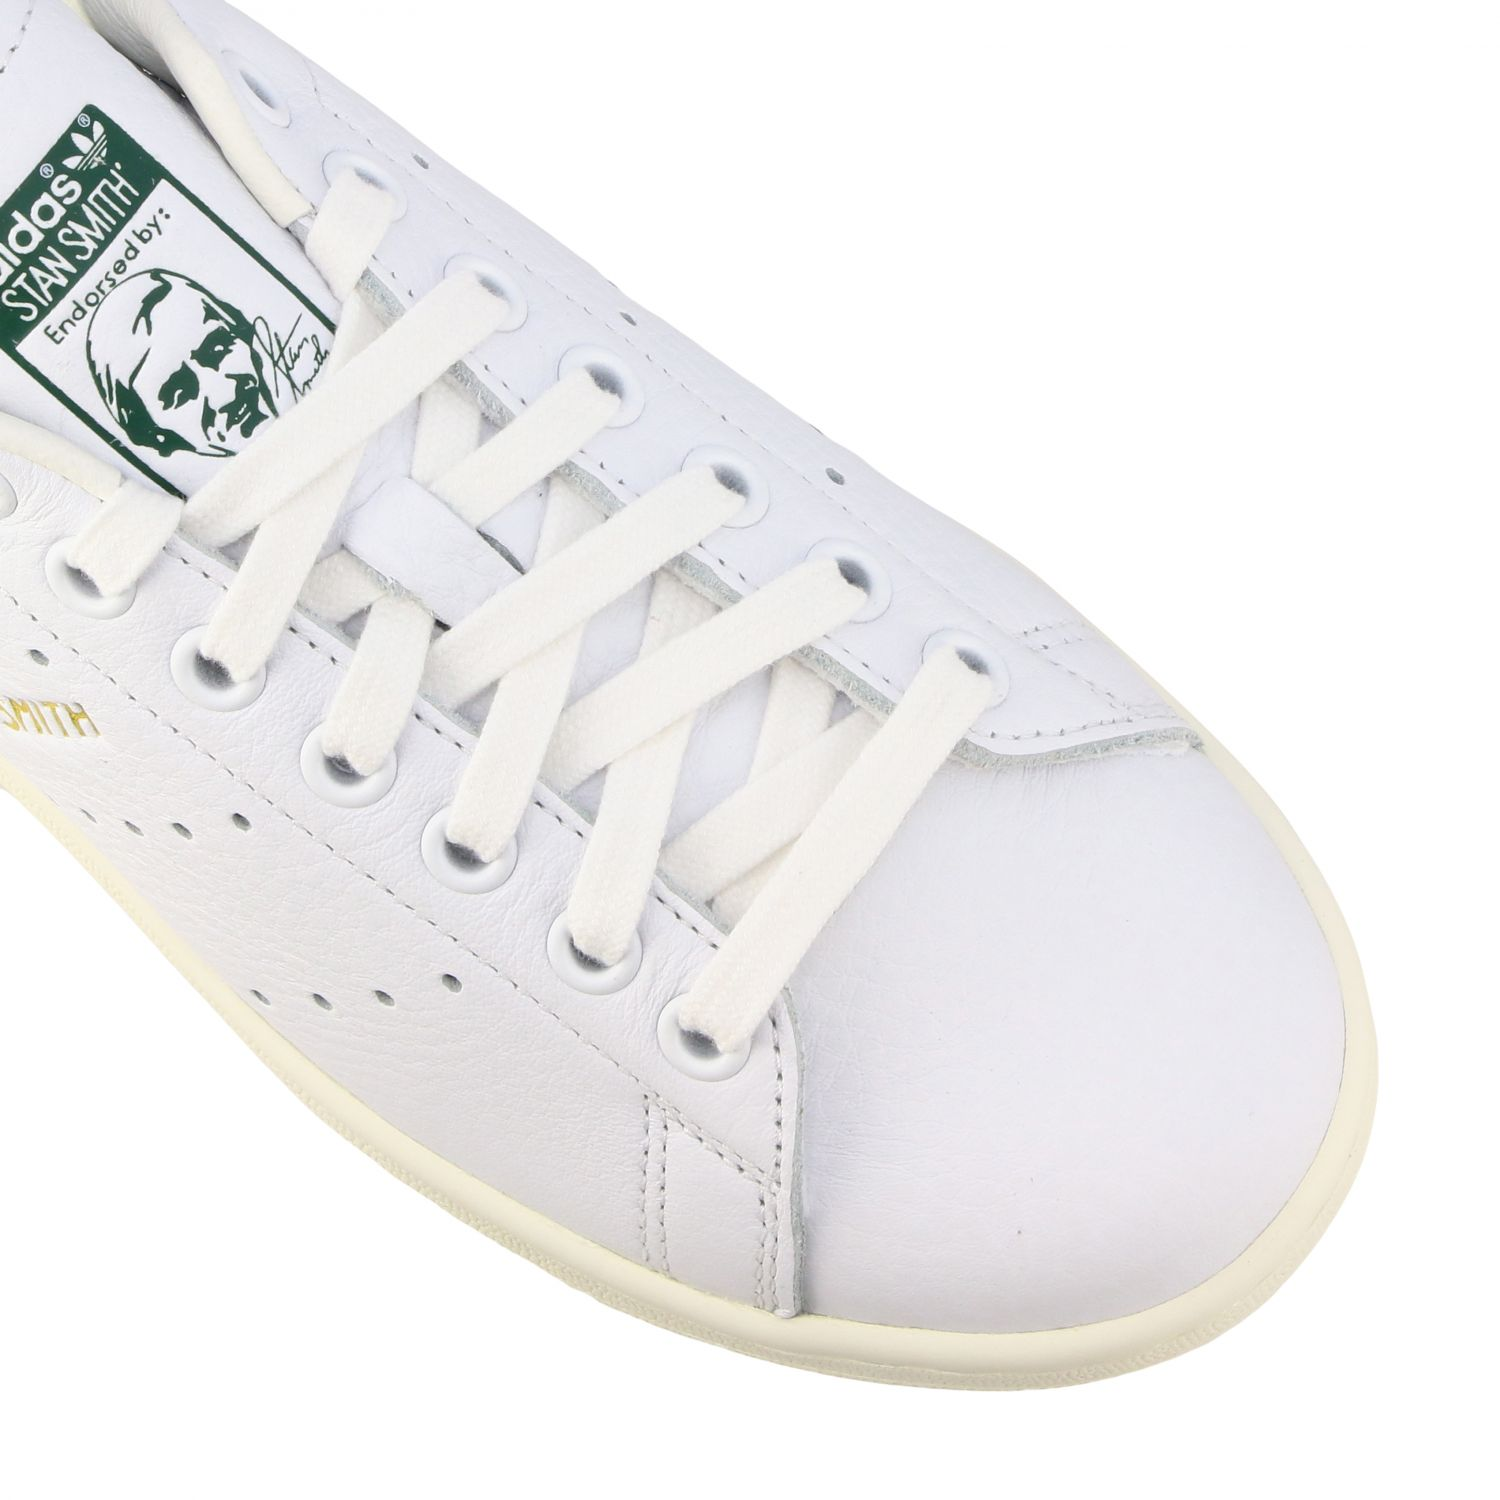 Sneakers Adidas Originals: Sneakers Stan smith Adidas Originals in pelle bianco 4